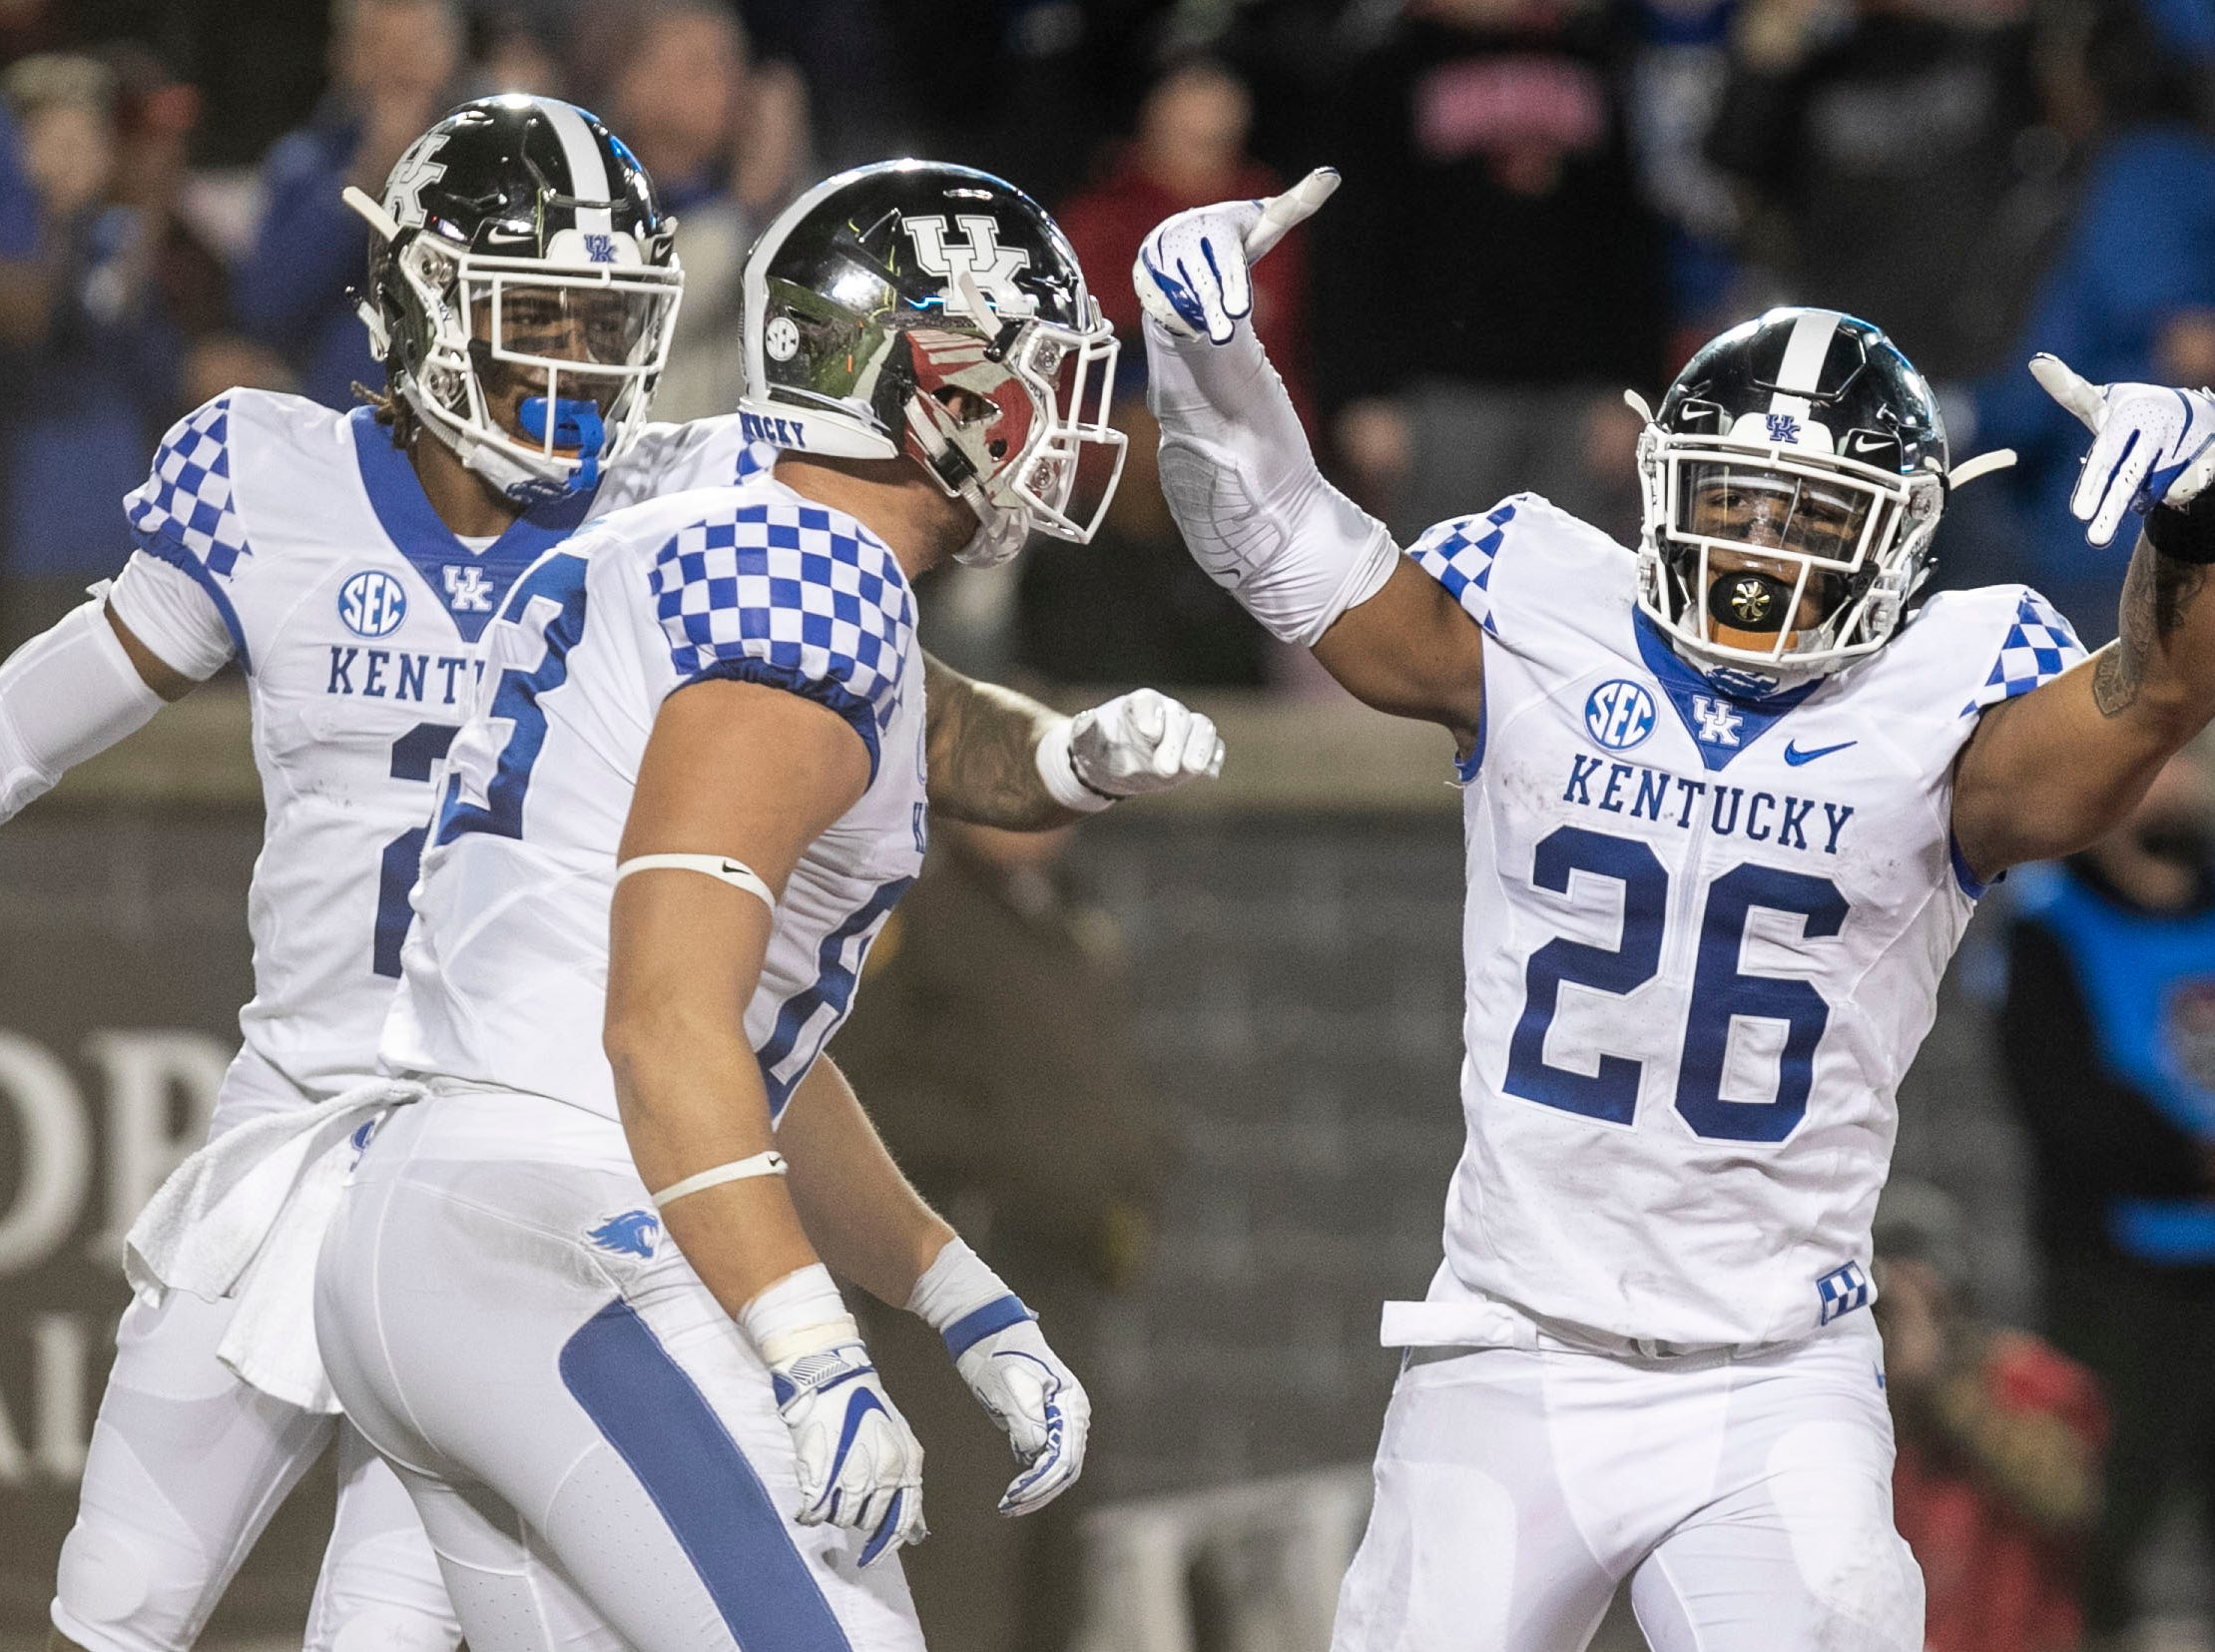 Kentucky's Benny Snell Jr. throws down the L's in disrespect after he scored his second touchdown against Louisville in the first half Saturday, Nov. 24, 2018.